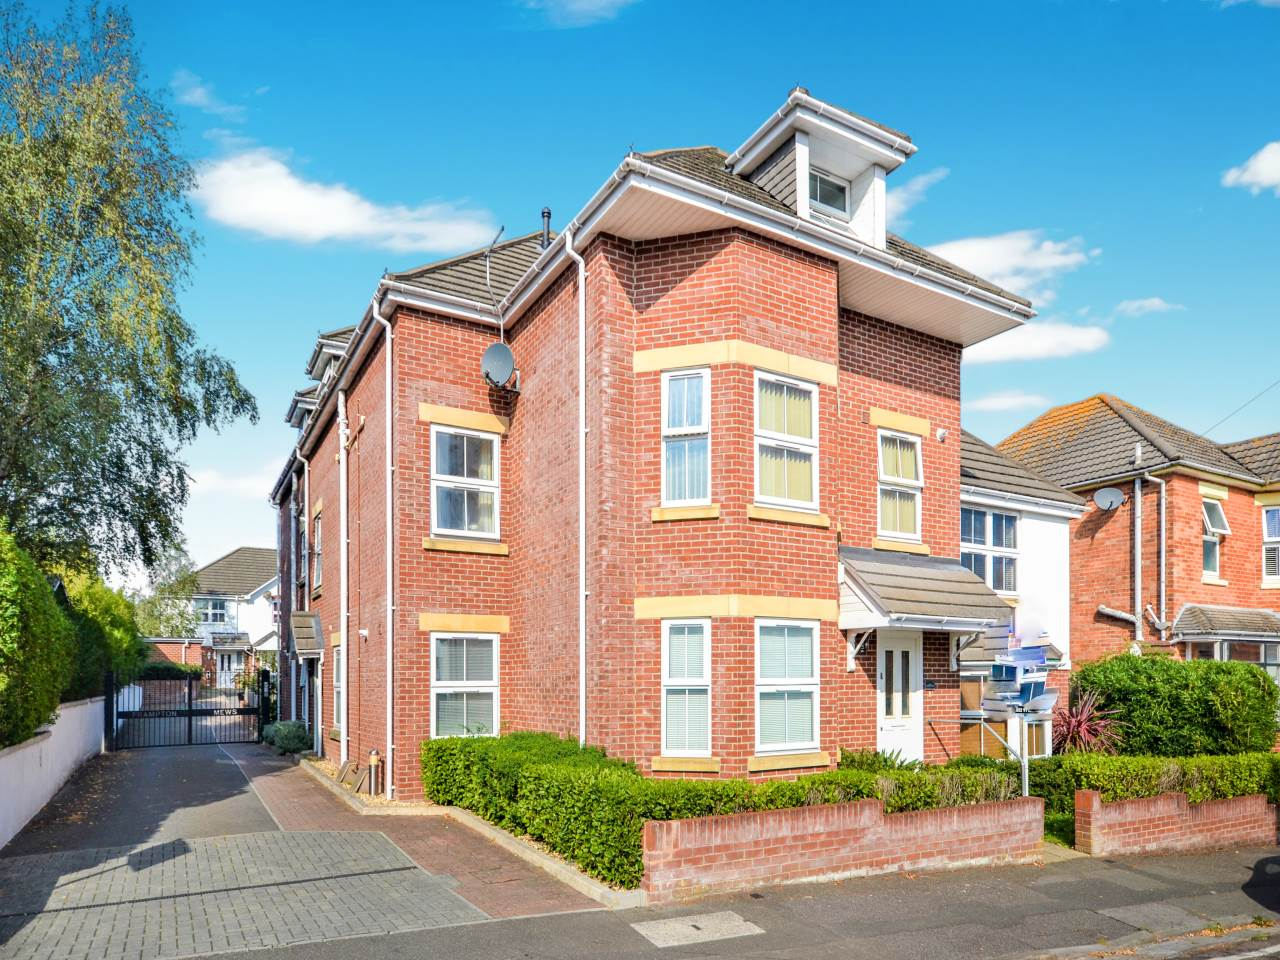 1 bed flat for sale in Frampton Mews, 6 Frampton Road, BH9